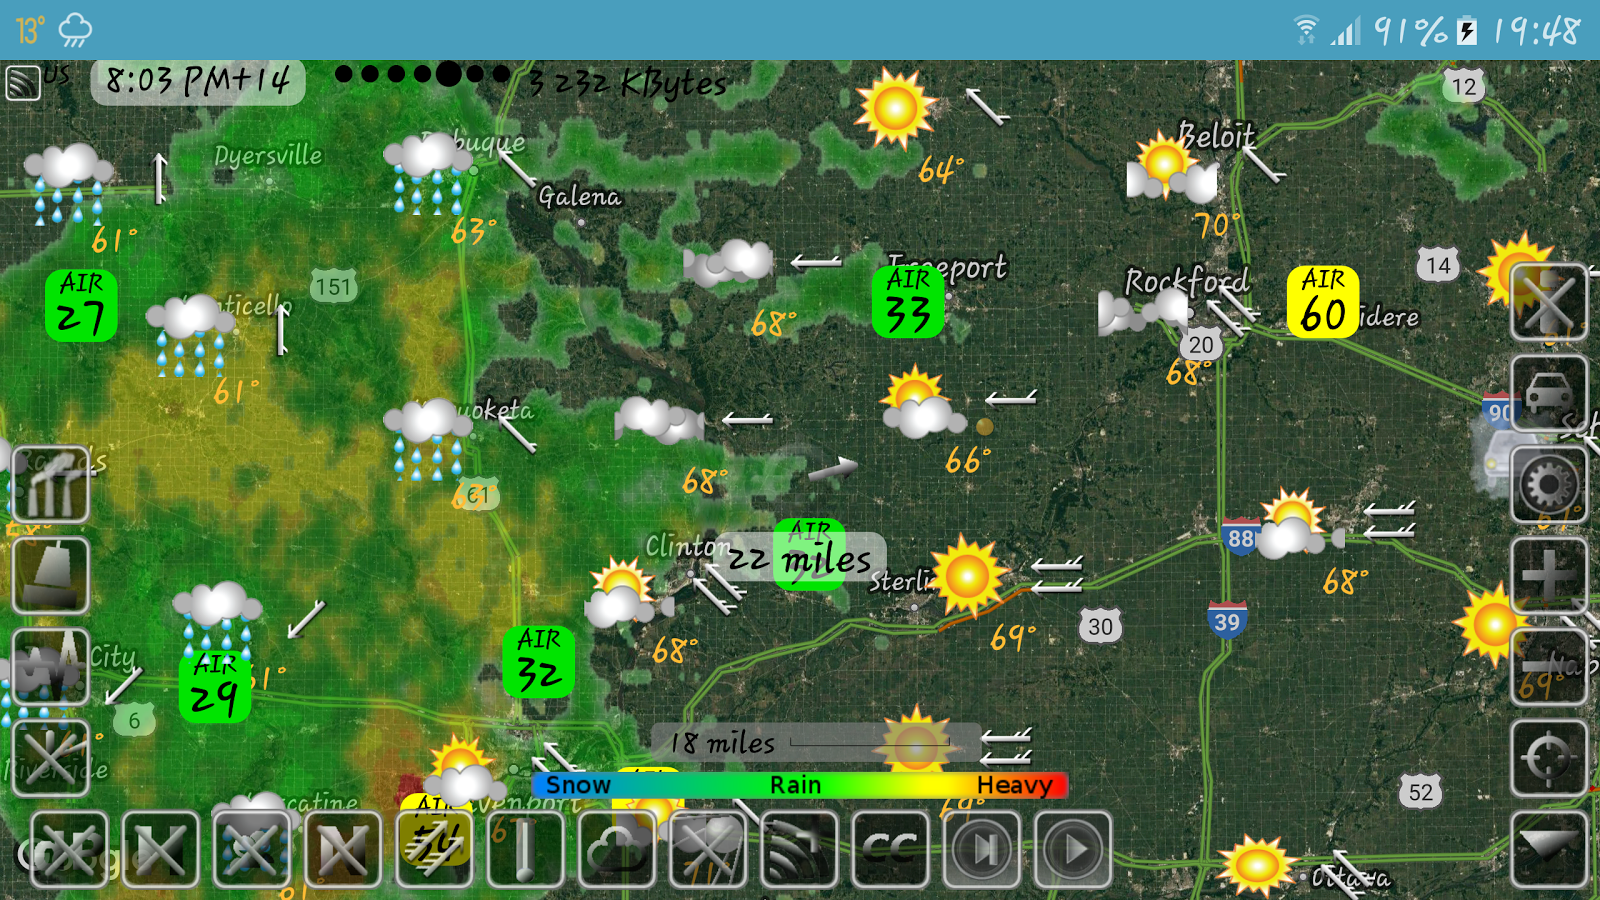 Weather Map with Hurricane tracks and Future radar- screenshot